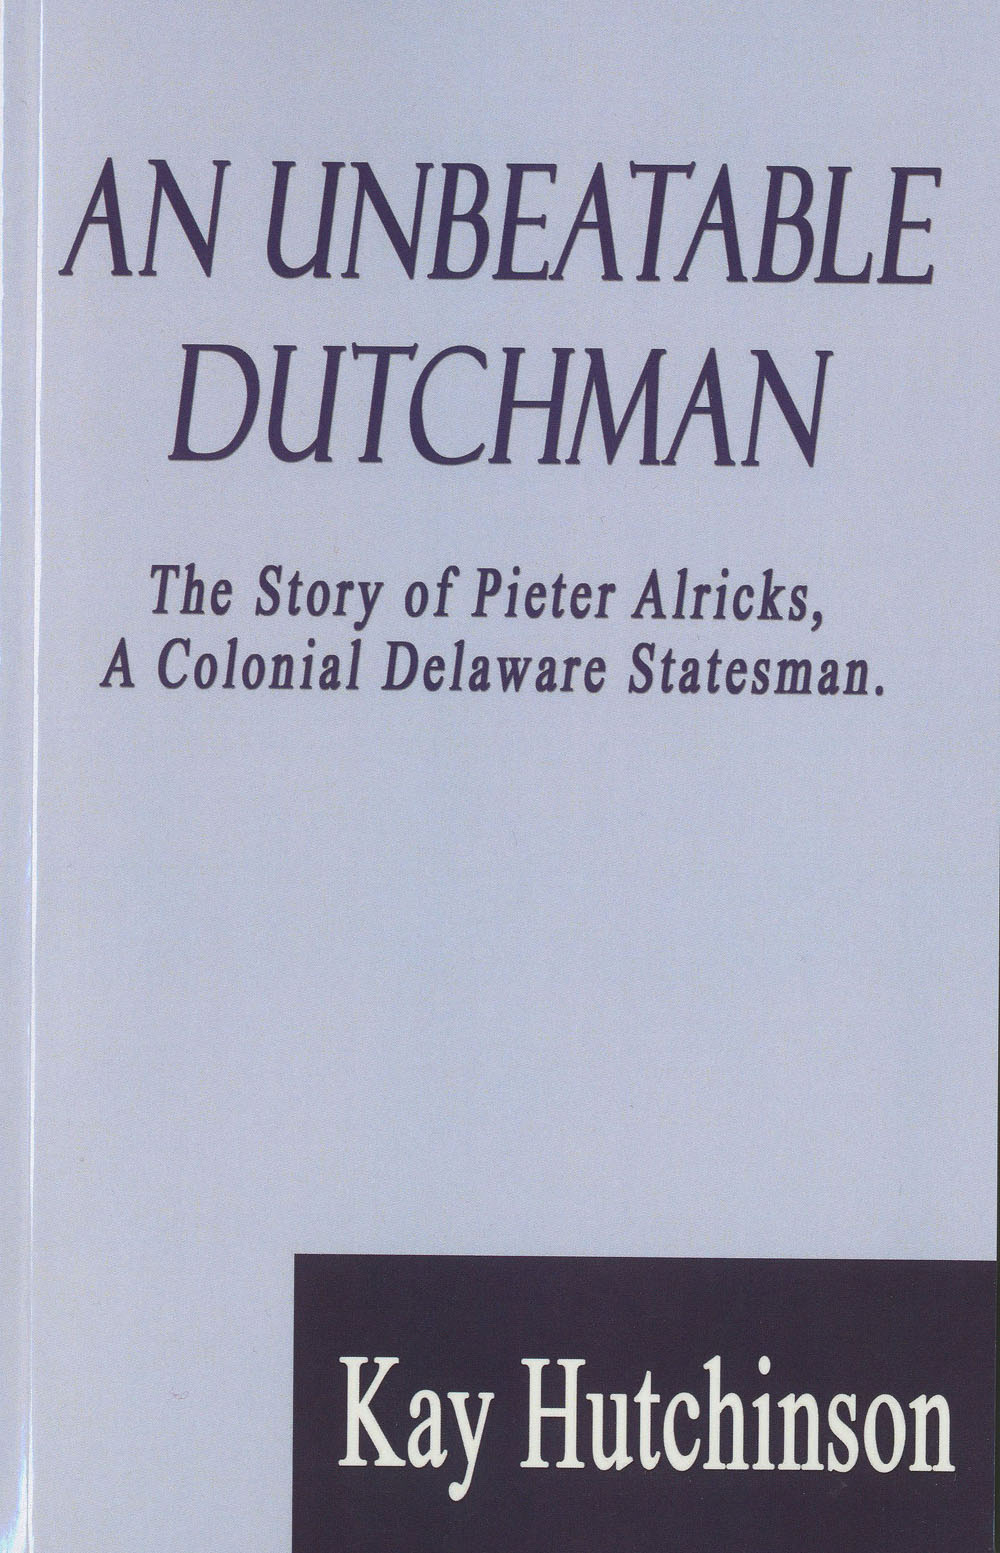 An Unbeatable Dutchman, by Kay Hutchinson, 2011, 160 pp. Prices reflect the cost of the book PLUS S&H fee of $3.00.